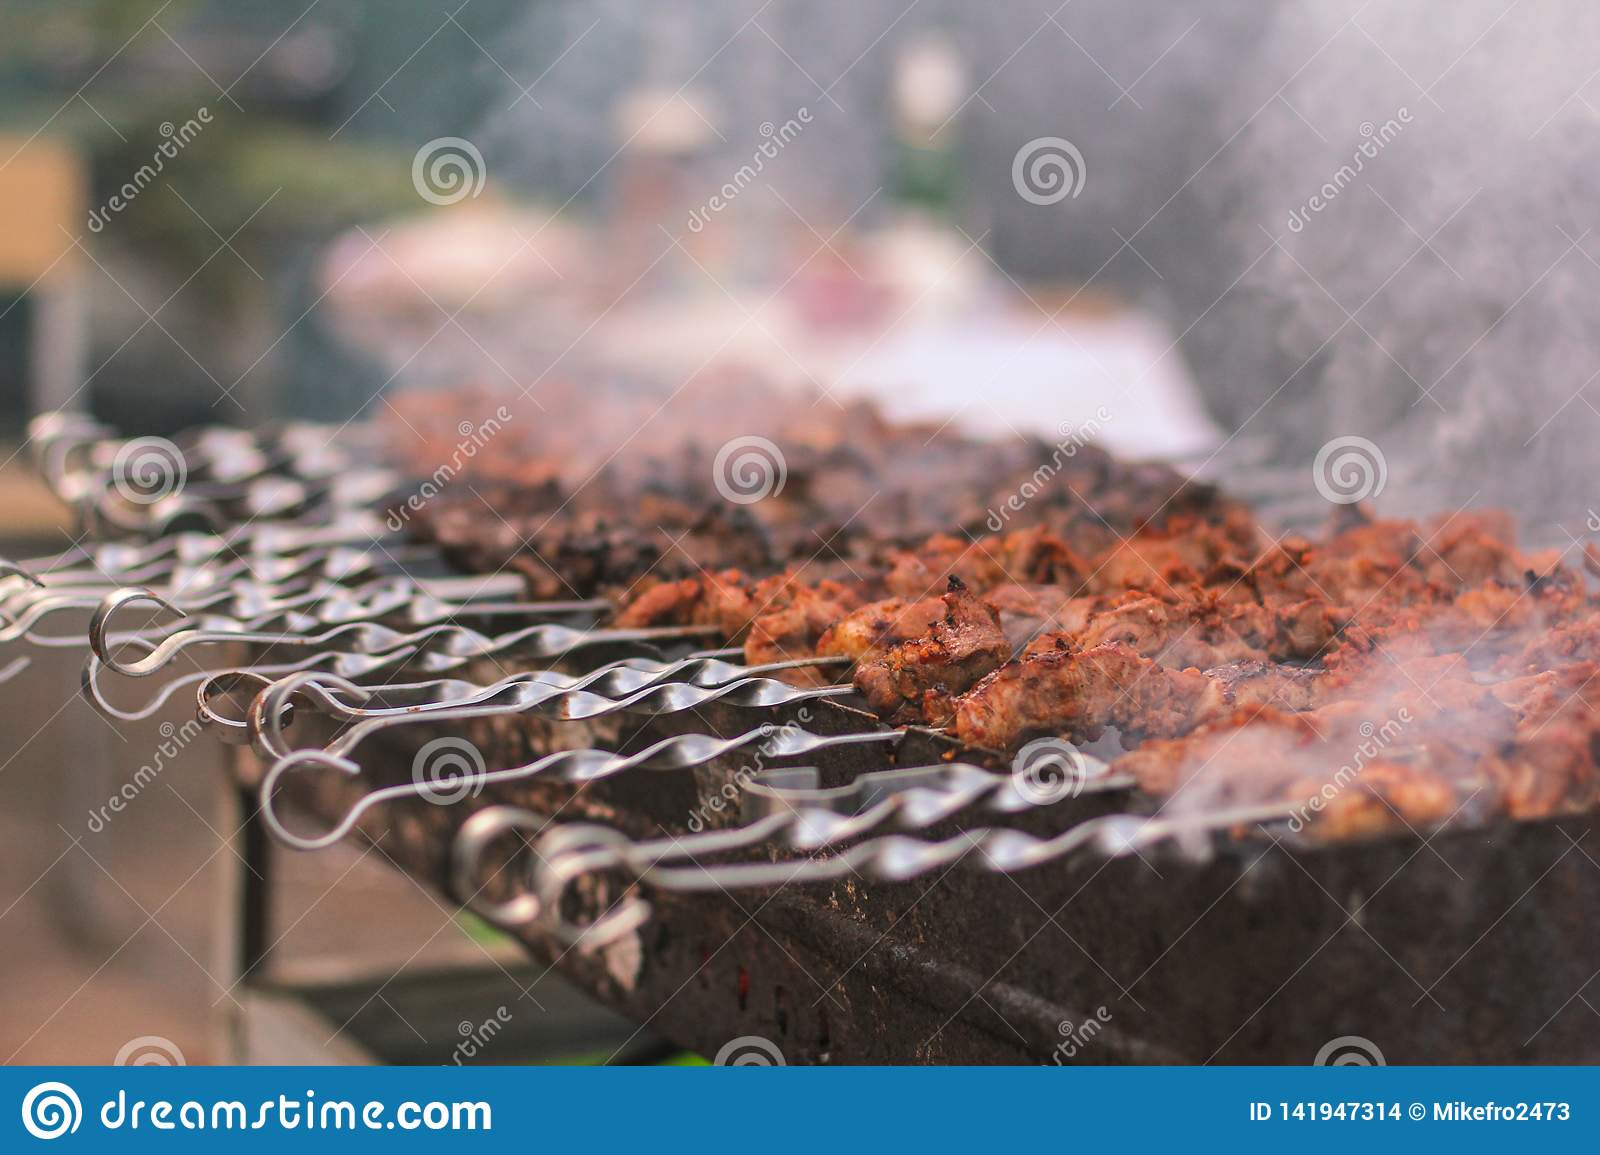 Shashlik or shashlyk preparing on a barbecue grill over charcoal. Grilled cubes of pork meat on metal skewer. Outdoor.